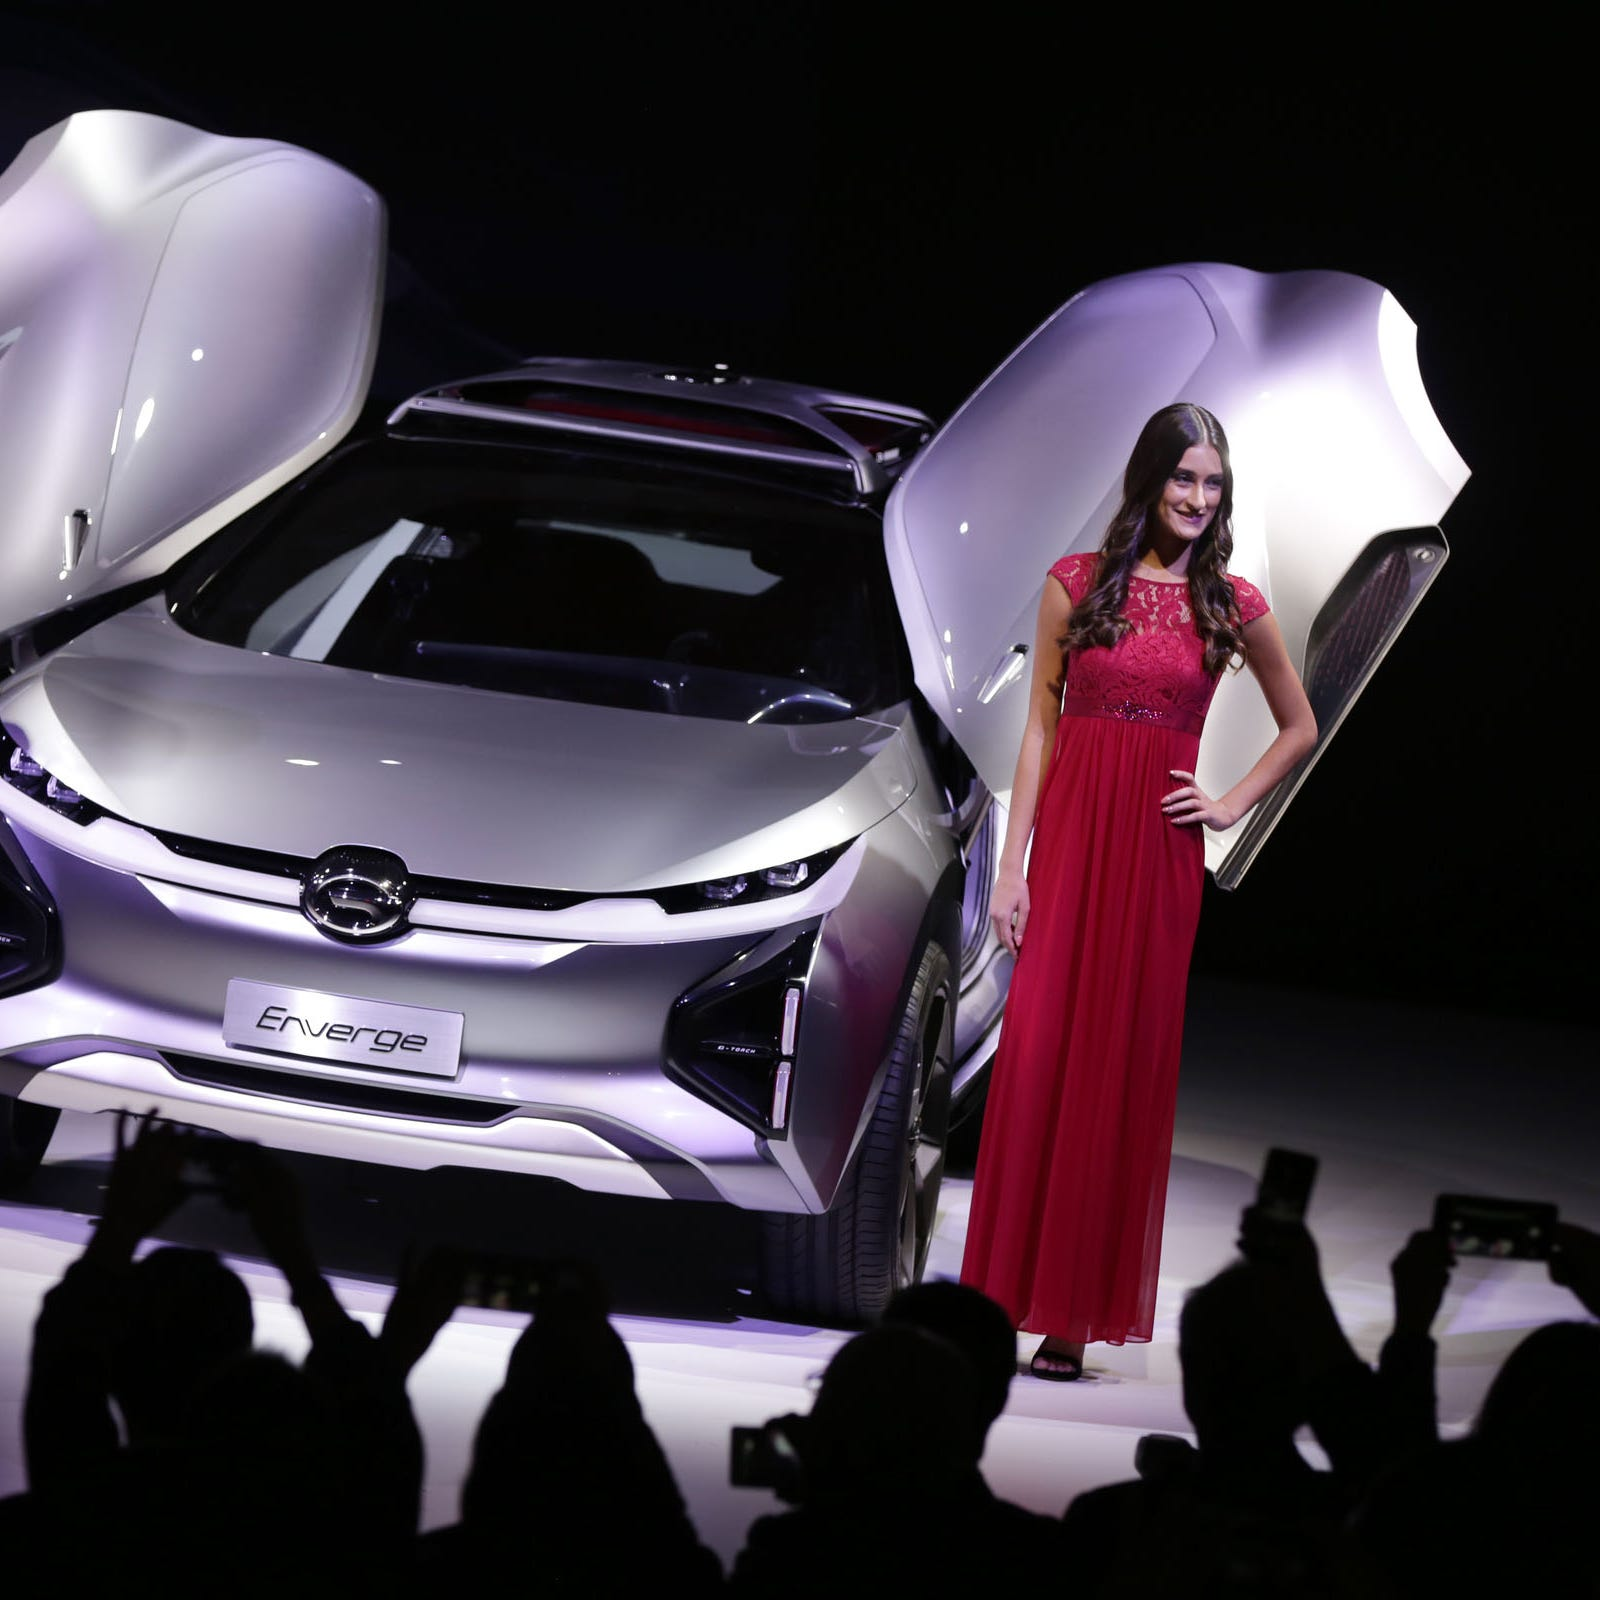 Detroit auto show 2019: Cadillac, Toyota, Ford to show new vehicles